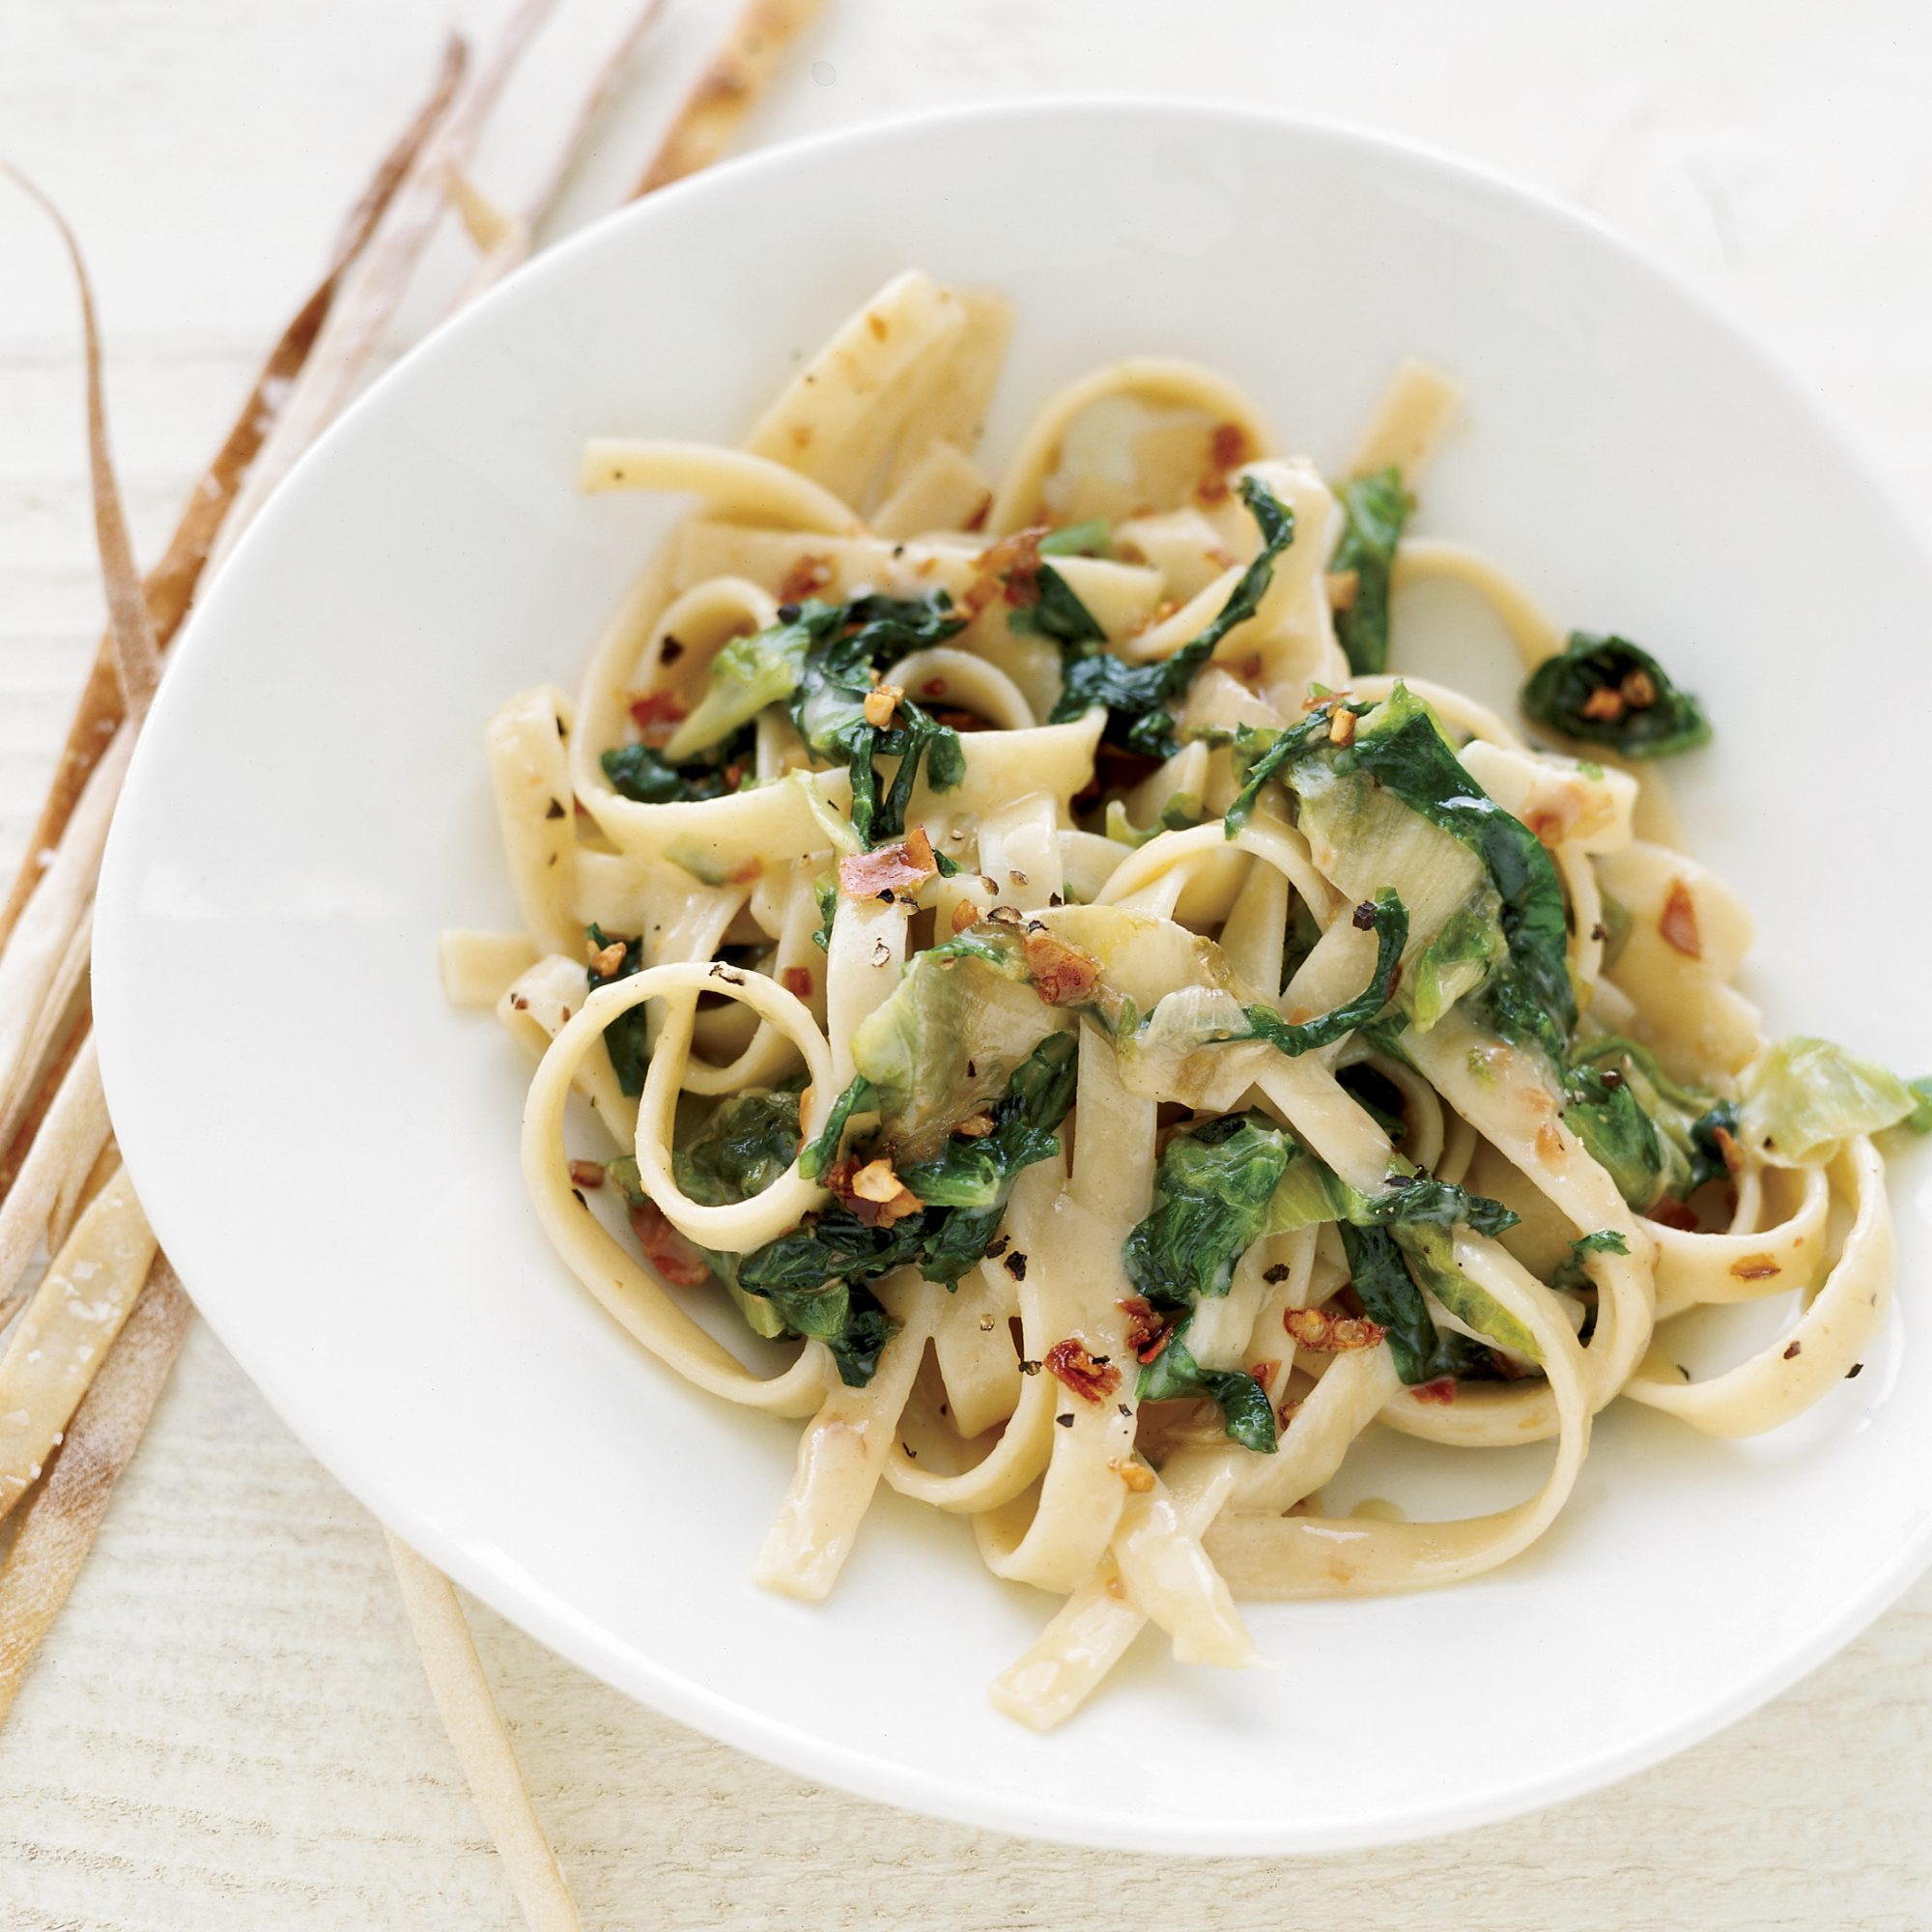 Fettuccine with Escarole and Brie